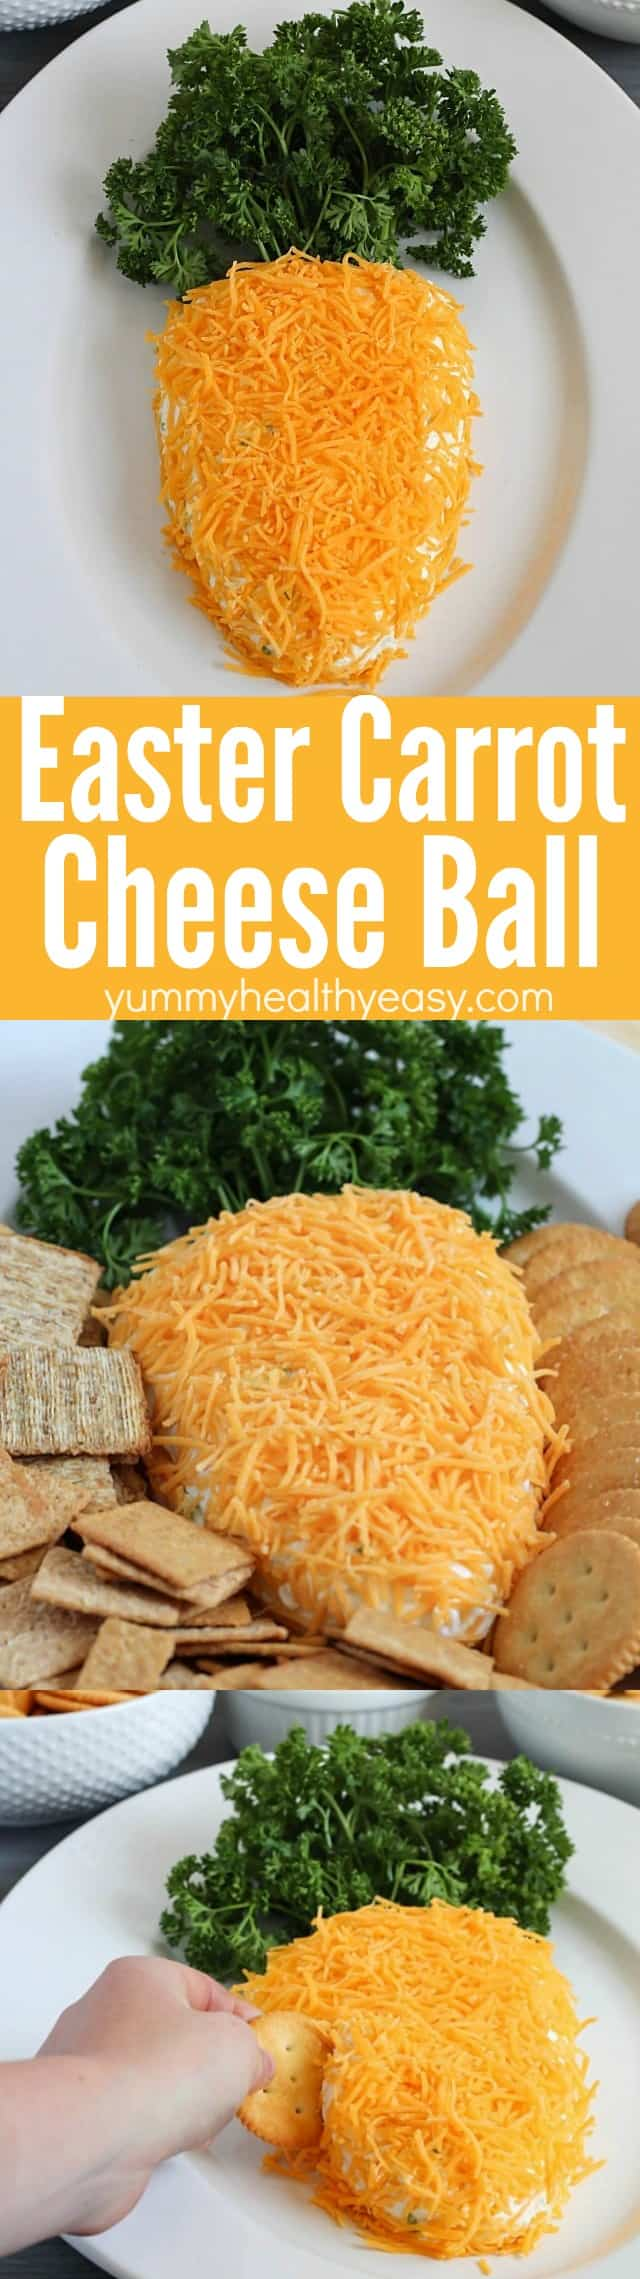 Need a fun treat to bring to an Easter party? Take this carrot-shaped cheese ball! It's sure to win the vote for cutest and tastiest snack! via @jennikolaus